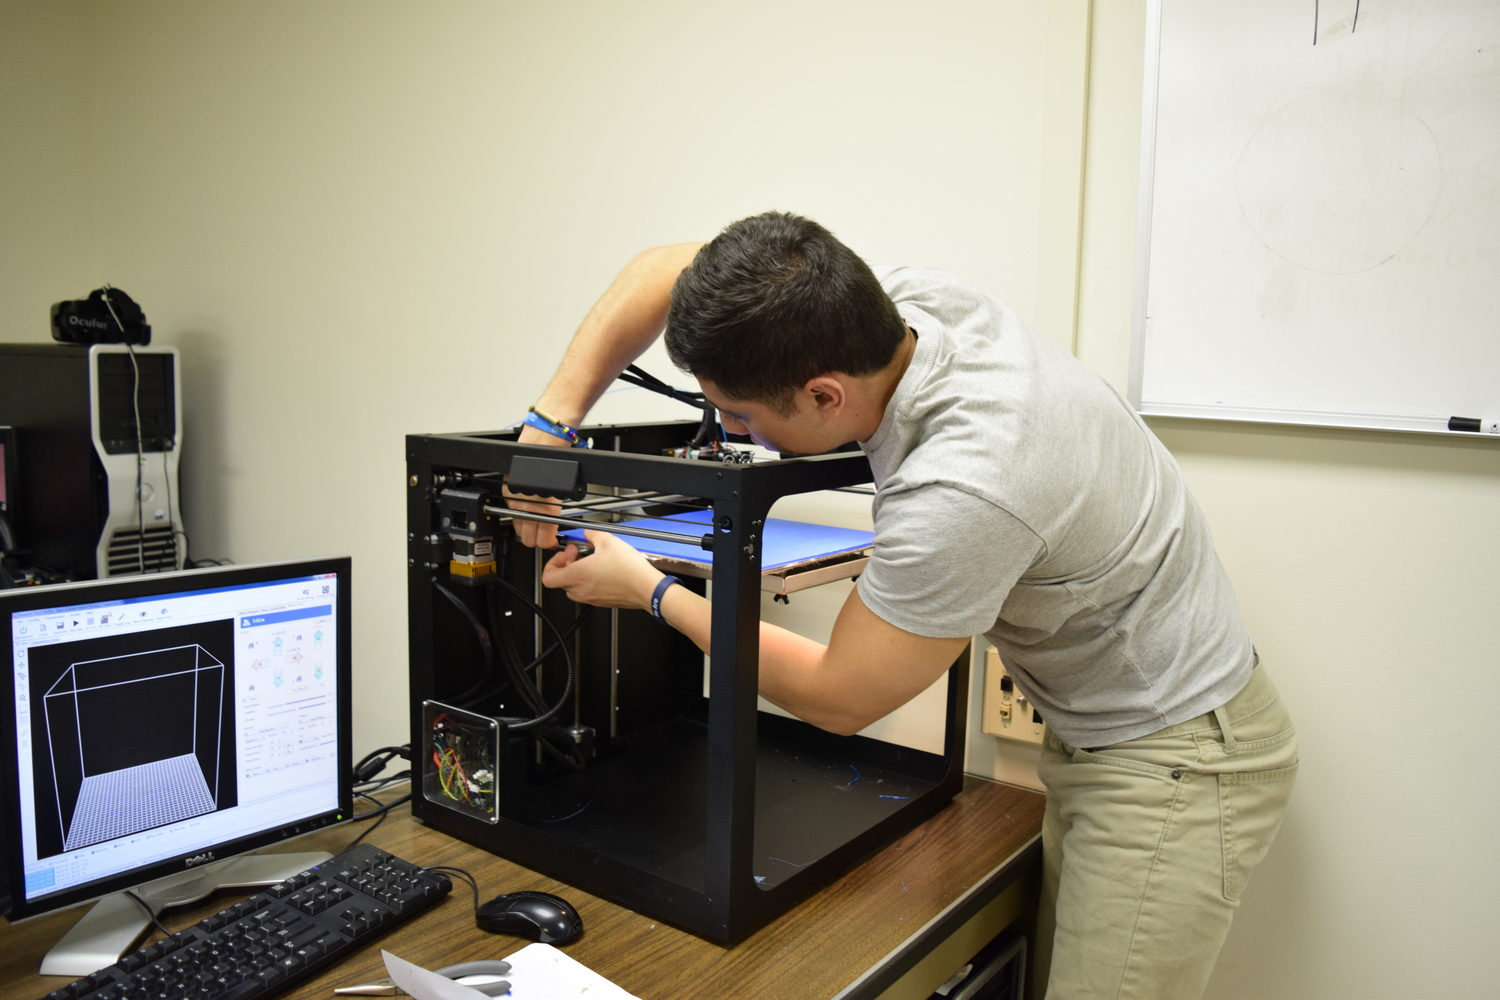 Solid Dynamics' Personnel Repairing a Printer after an In-Process Failure